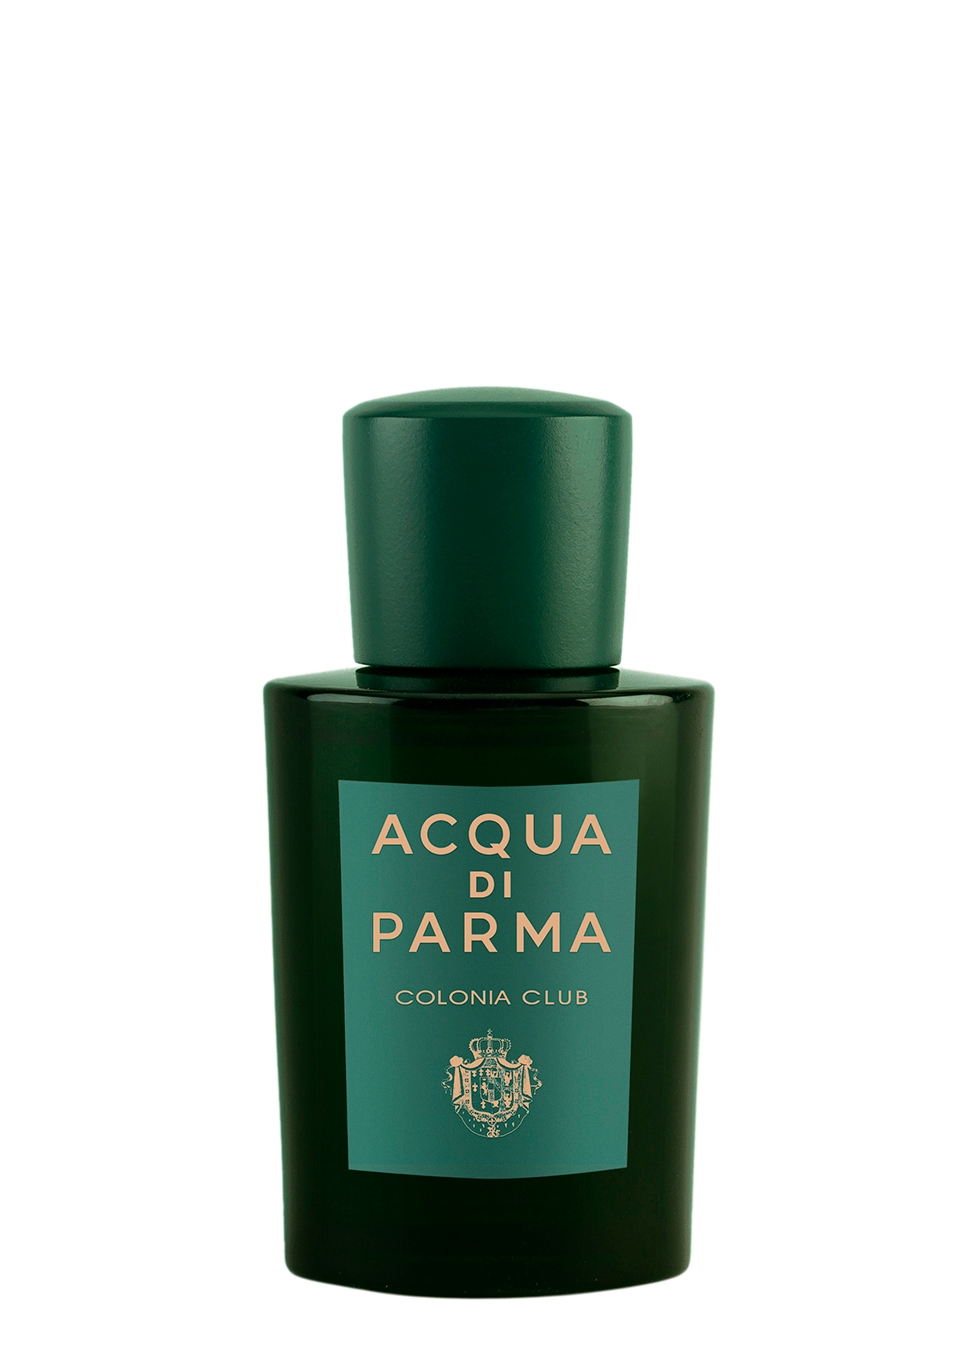 Colonia Club Eau De Cologne 20ml - Acqua di Parma